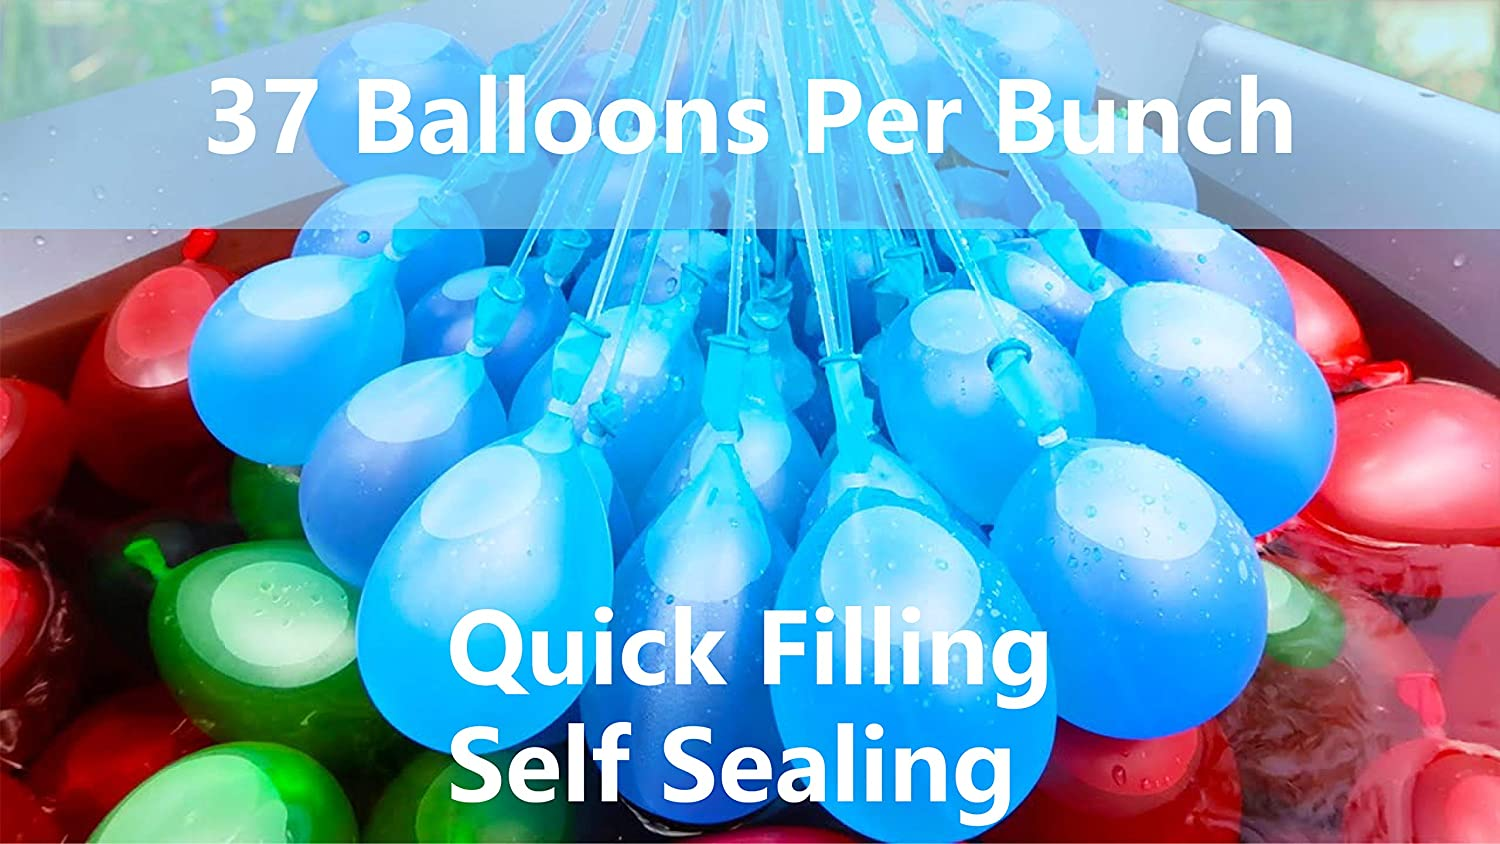 Water Balloons for Kids Girls Boys Balloons Set Party Games Quick Fill Balloons 592 Bunches for Swimming Pool Outdoor Summer Fun LBM3